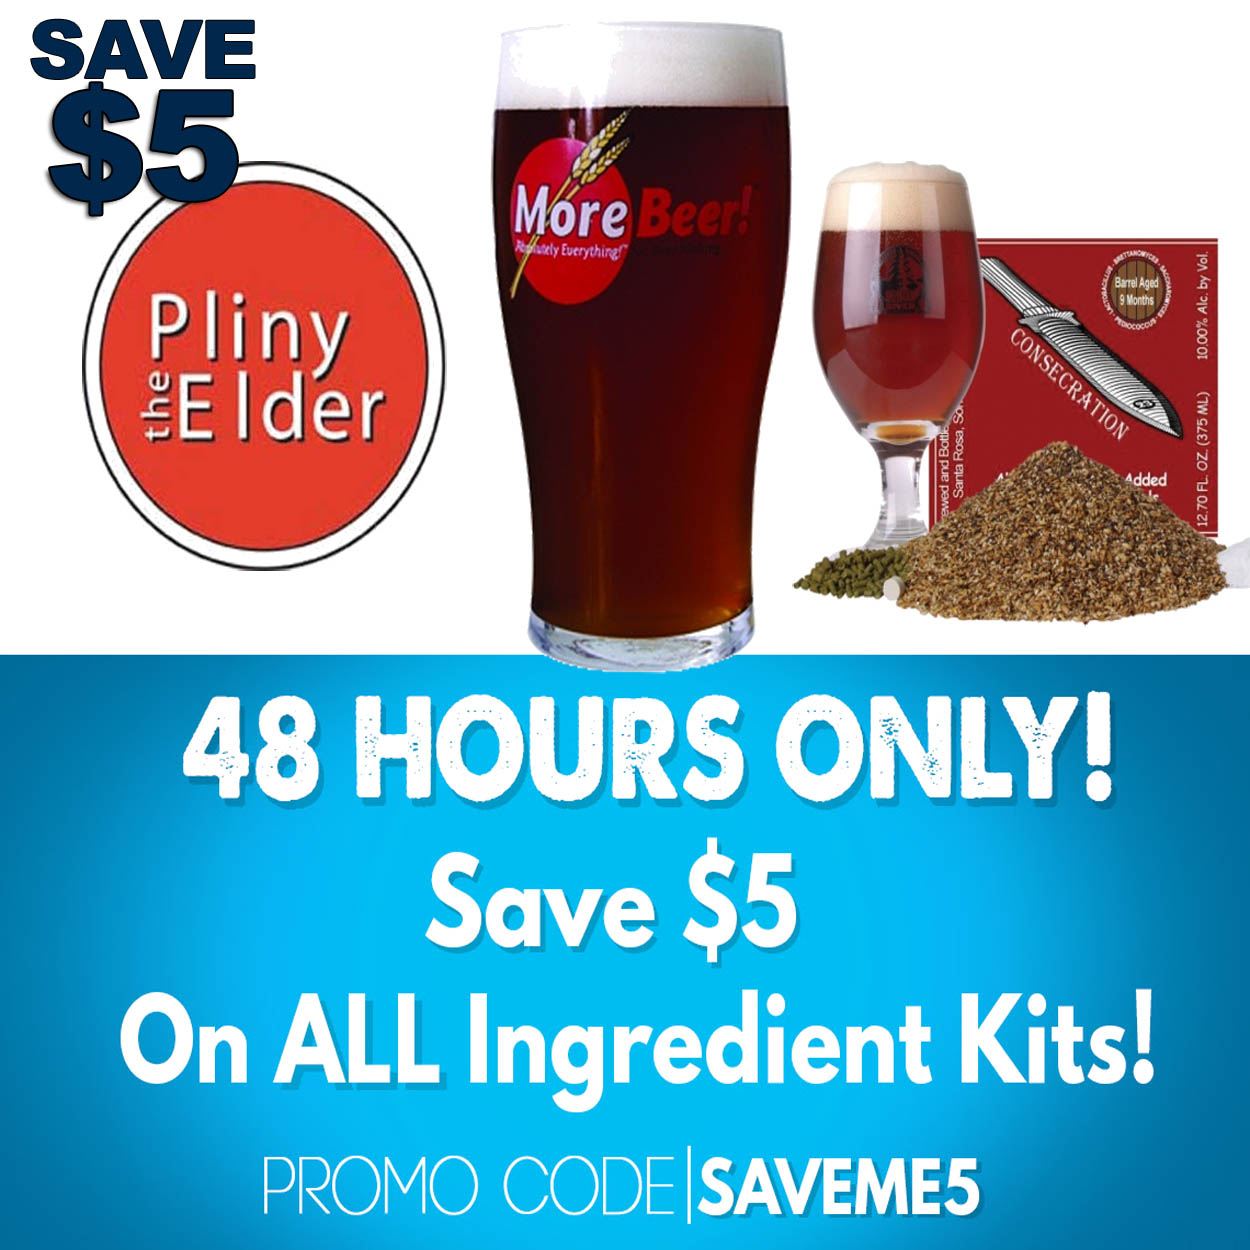 Home Brewer Promo Code for Save $5 On All Beer Kits at MoreBeer.com Coupon Code